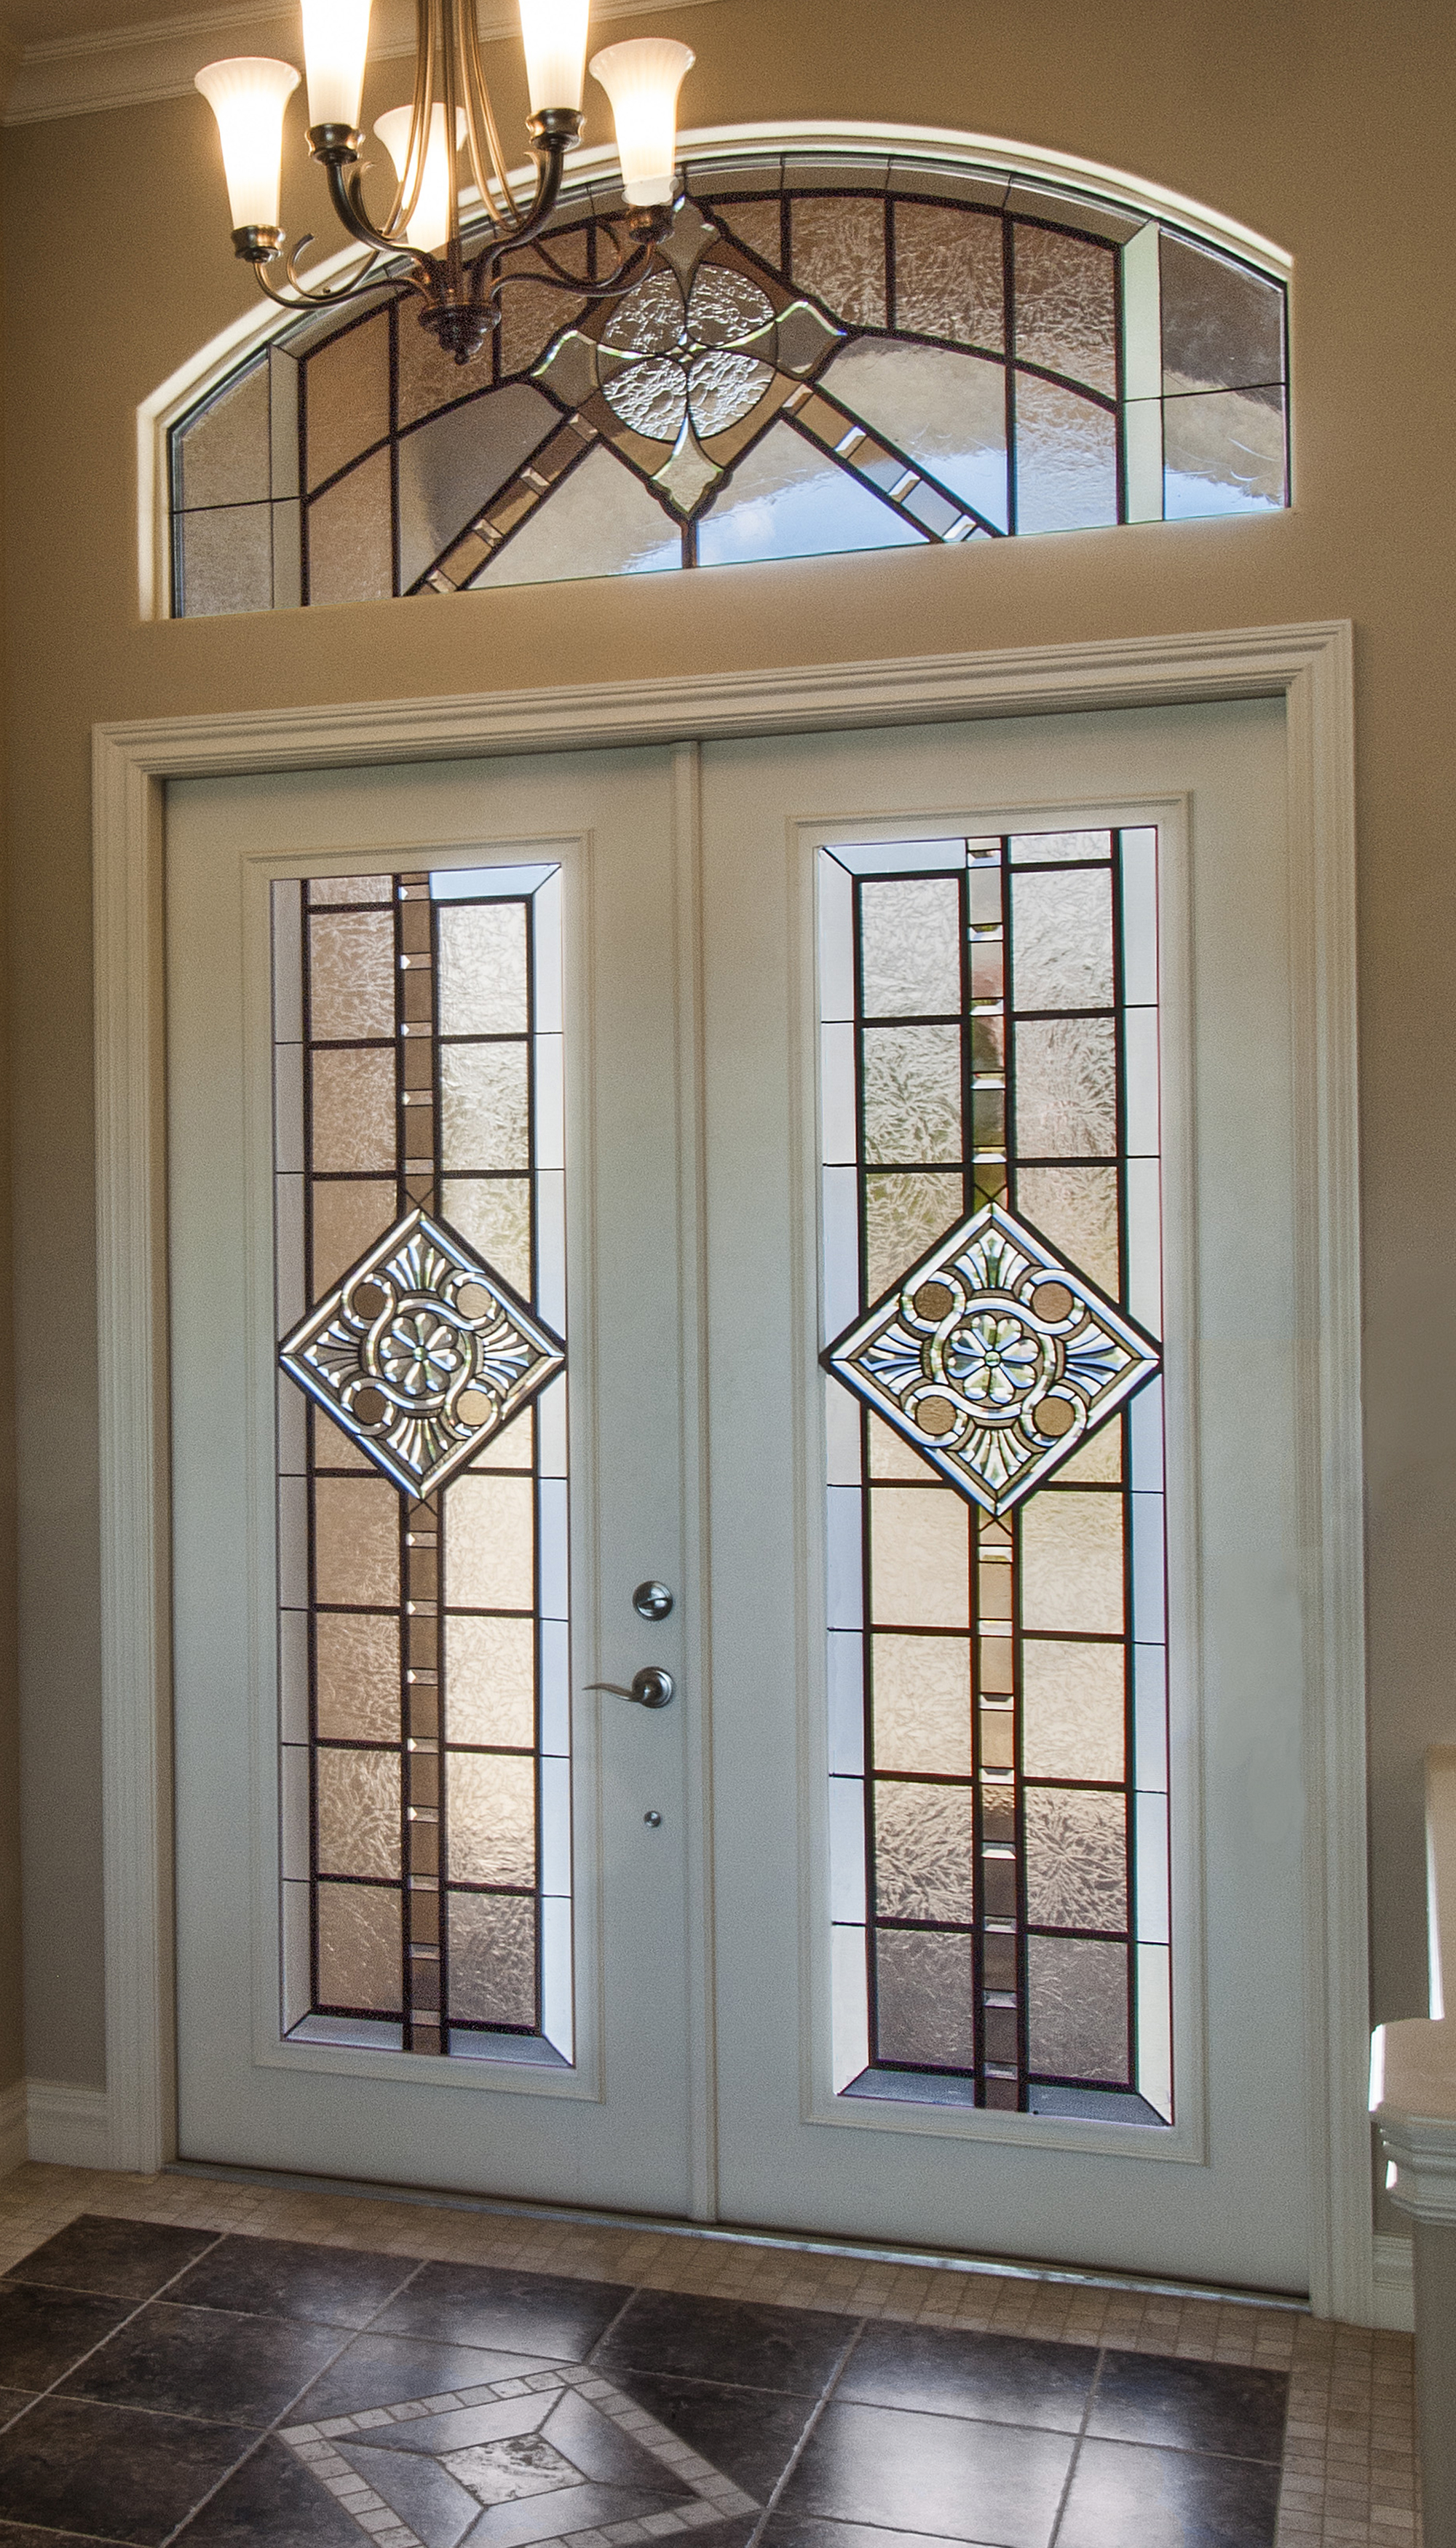 Transitional modern faux wrought iron